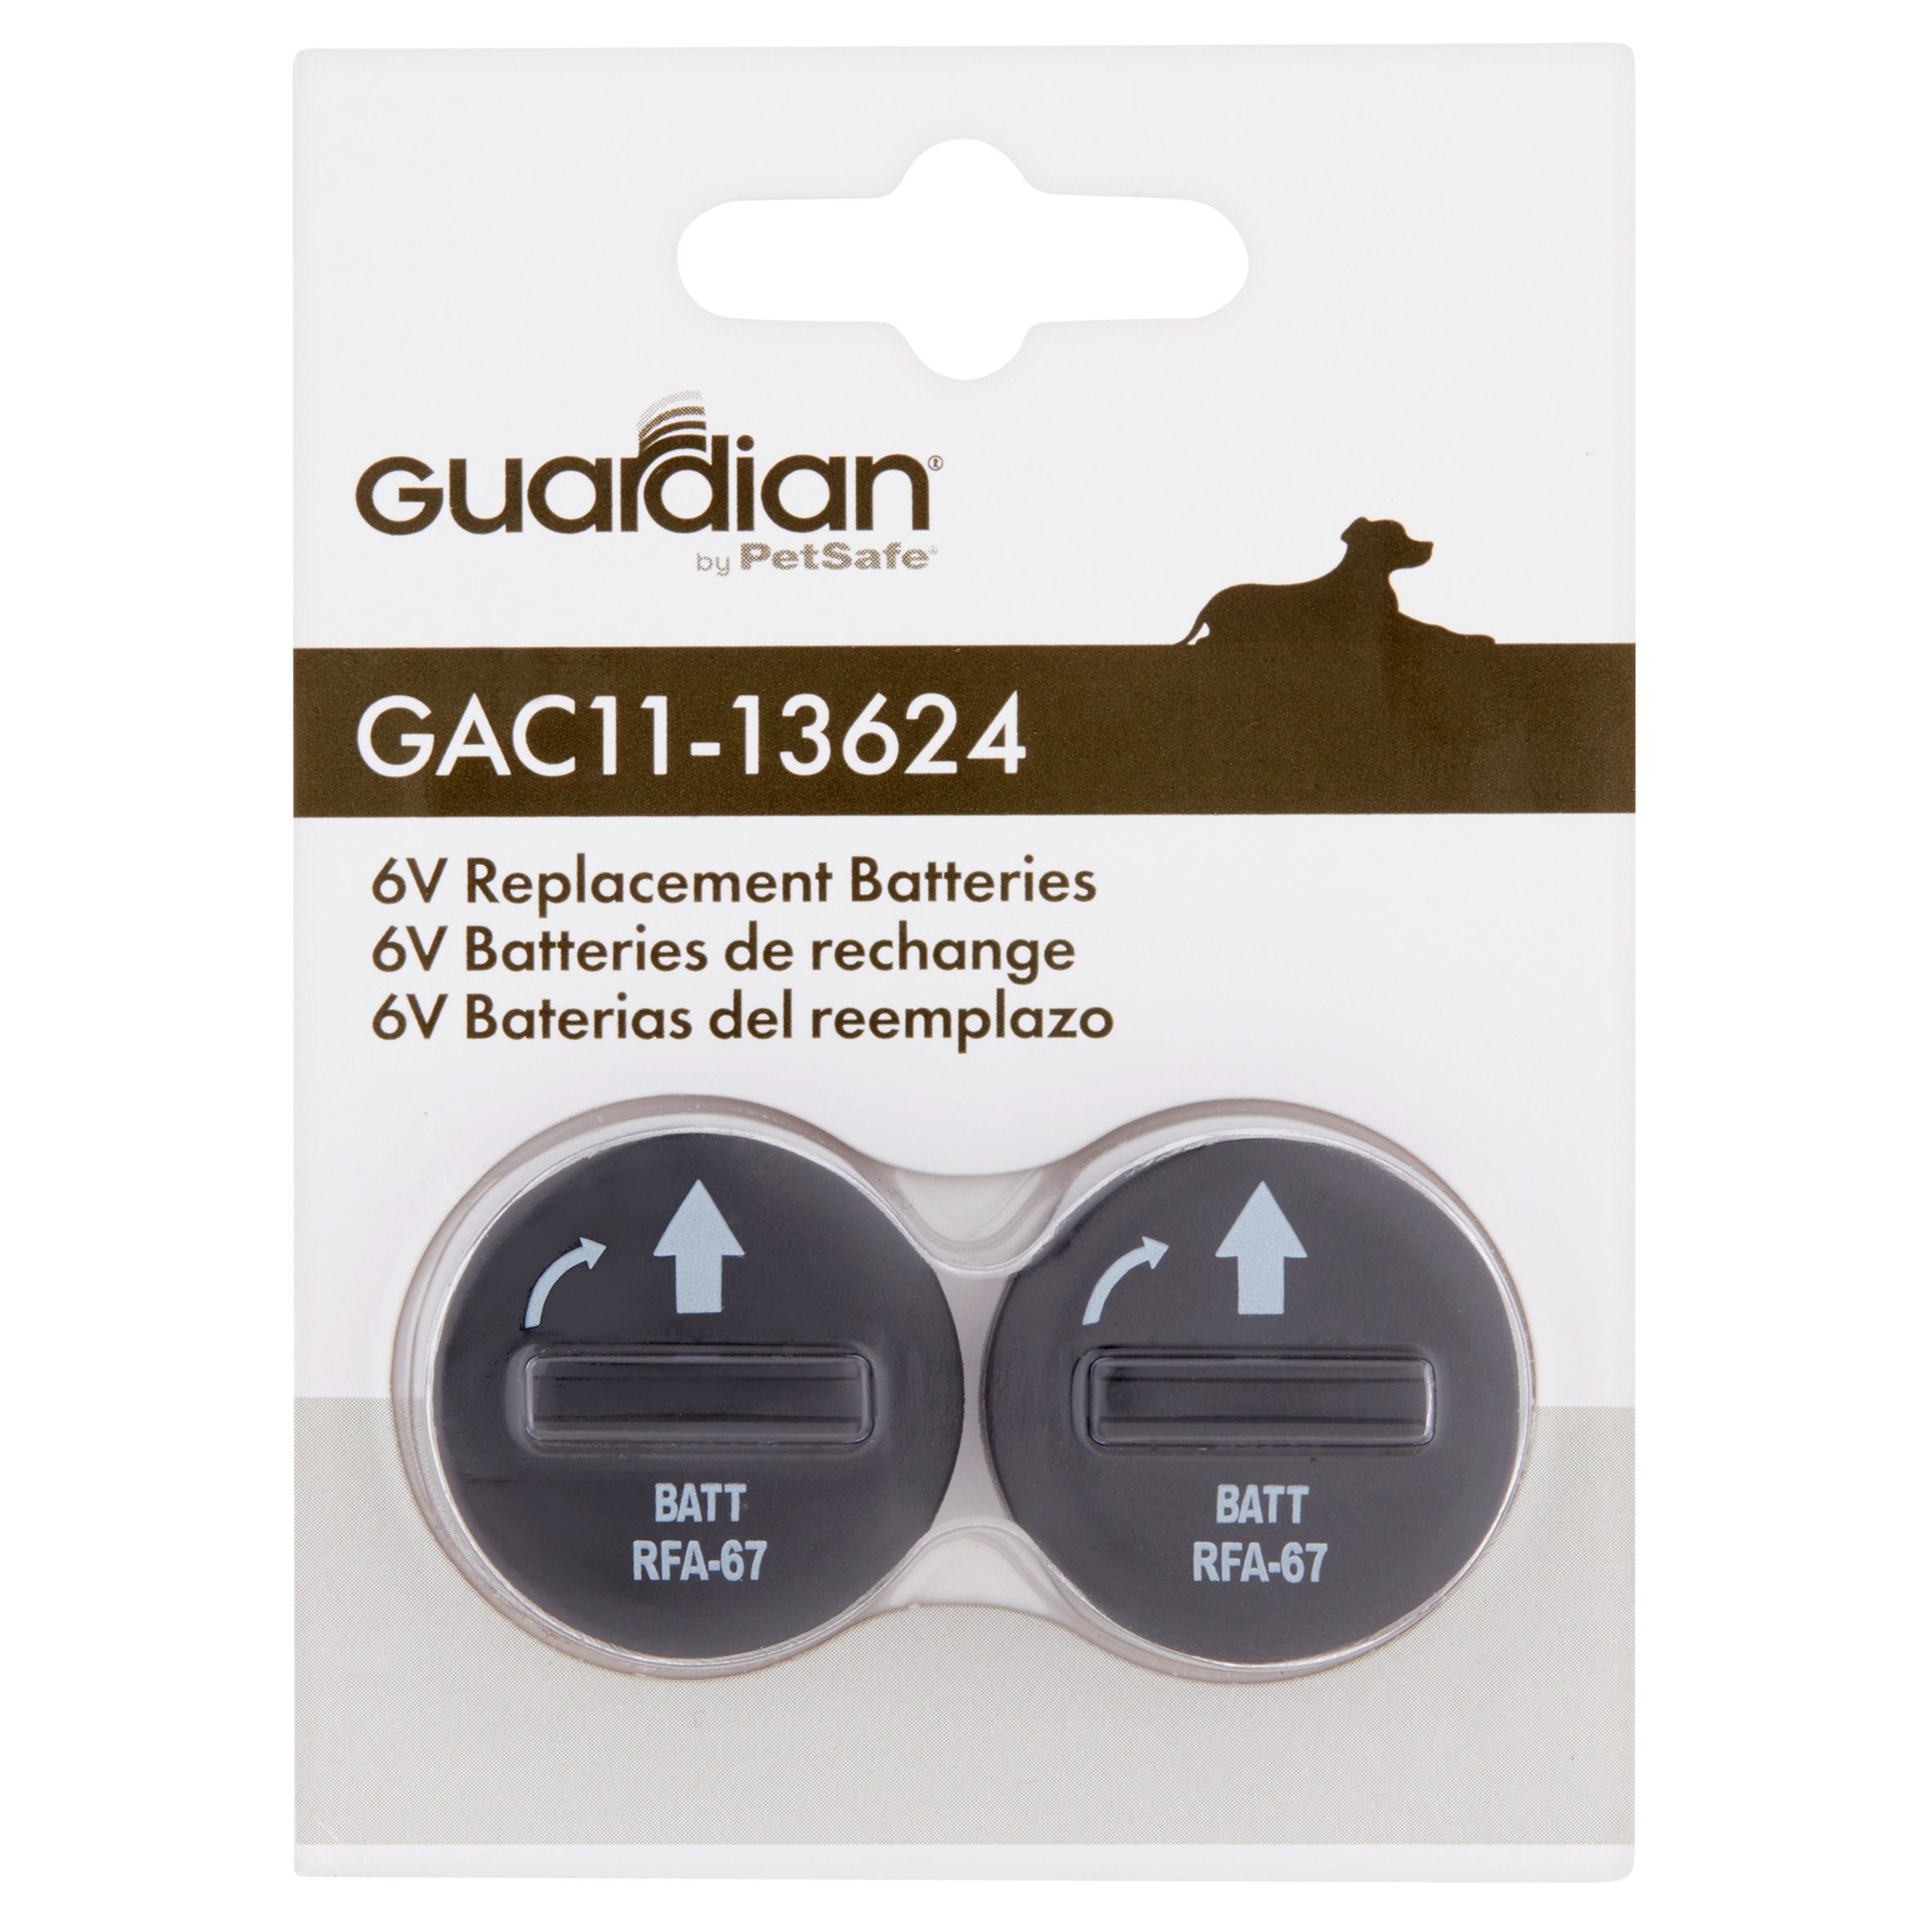 Guardian 6-Volt Replacement Batteries, 2-Pack